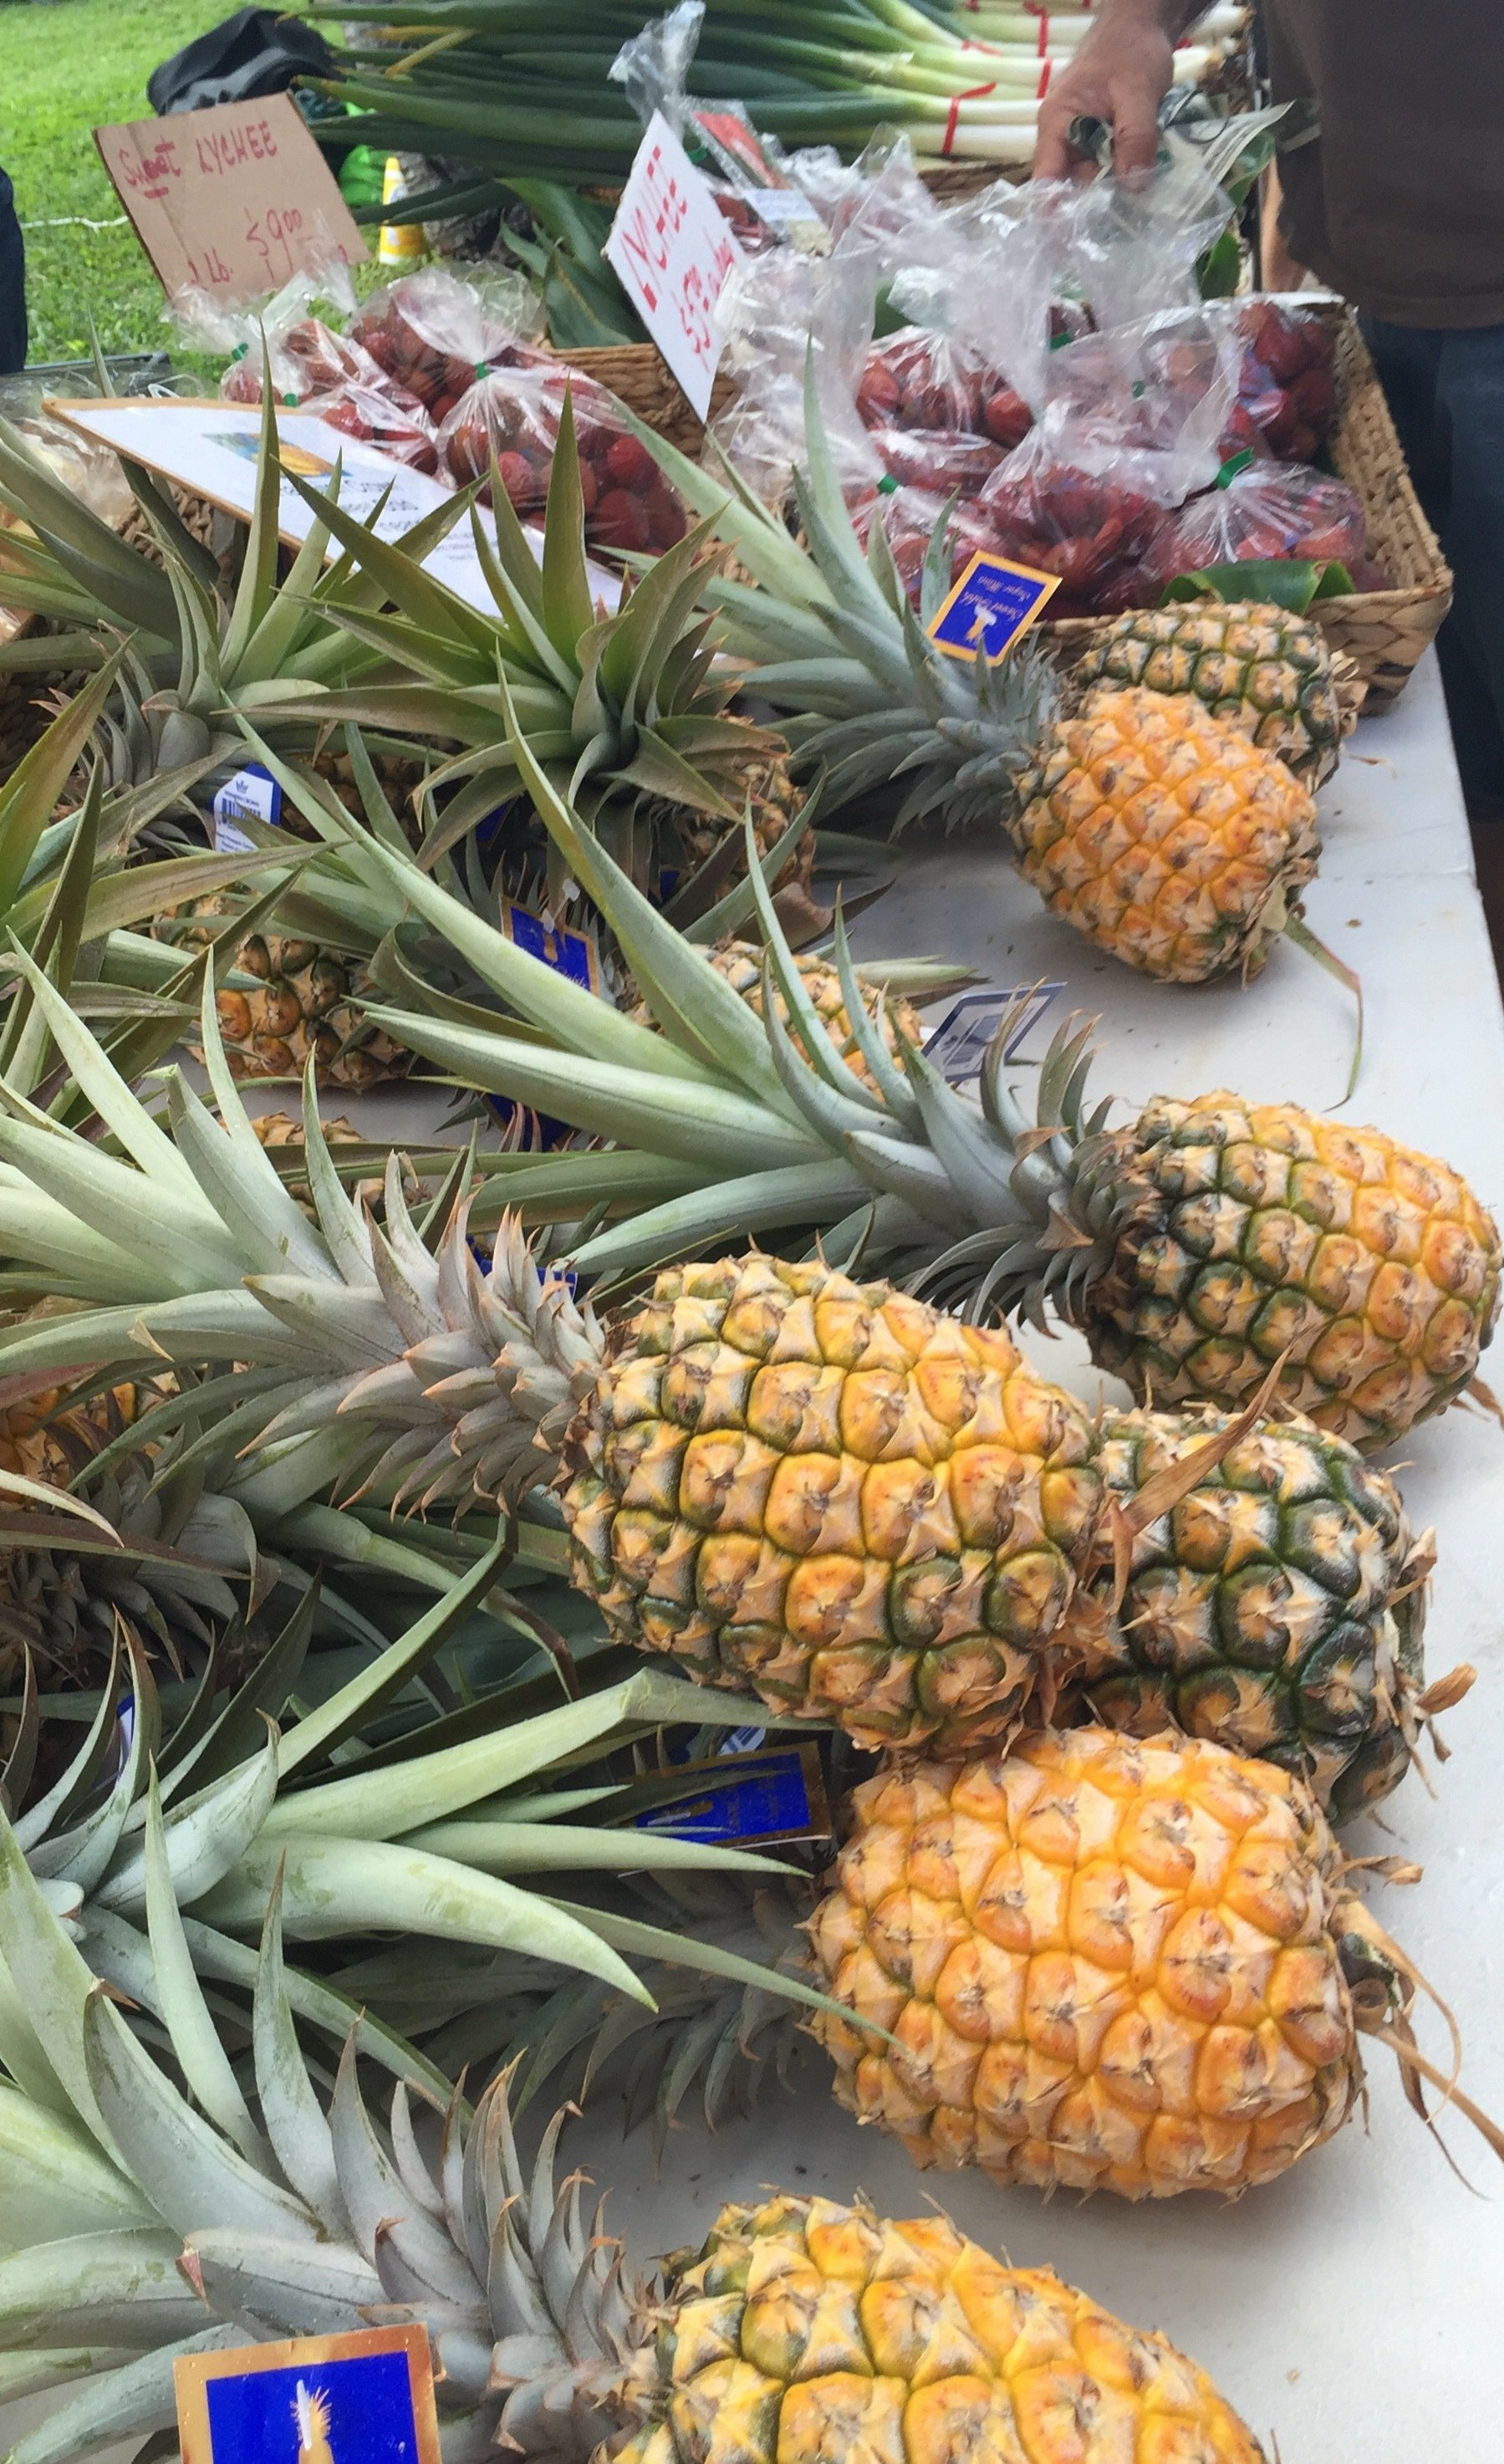 Various fruits for healthy living and eating lifestyles